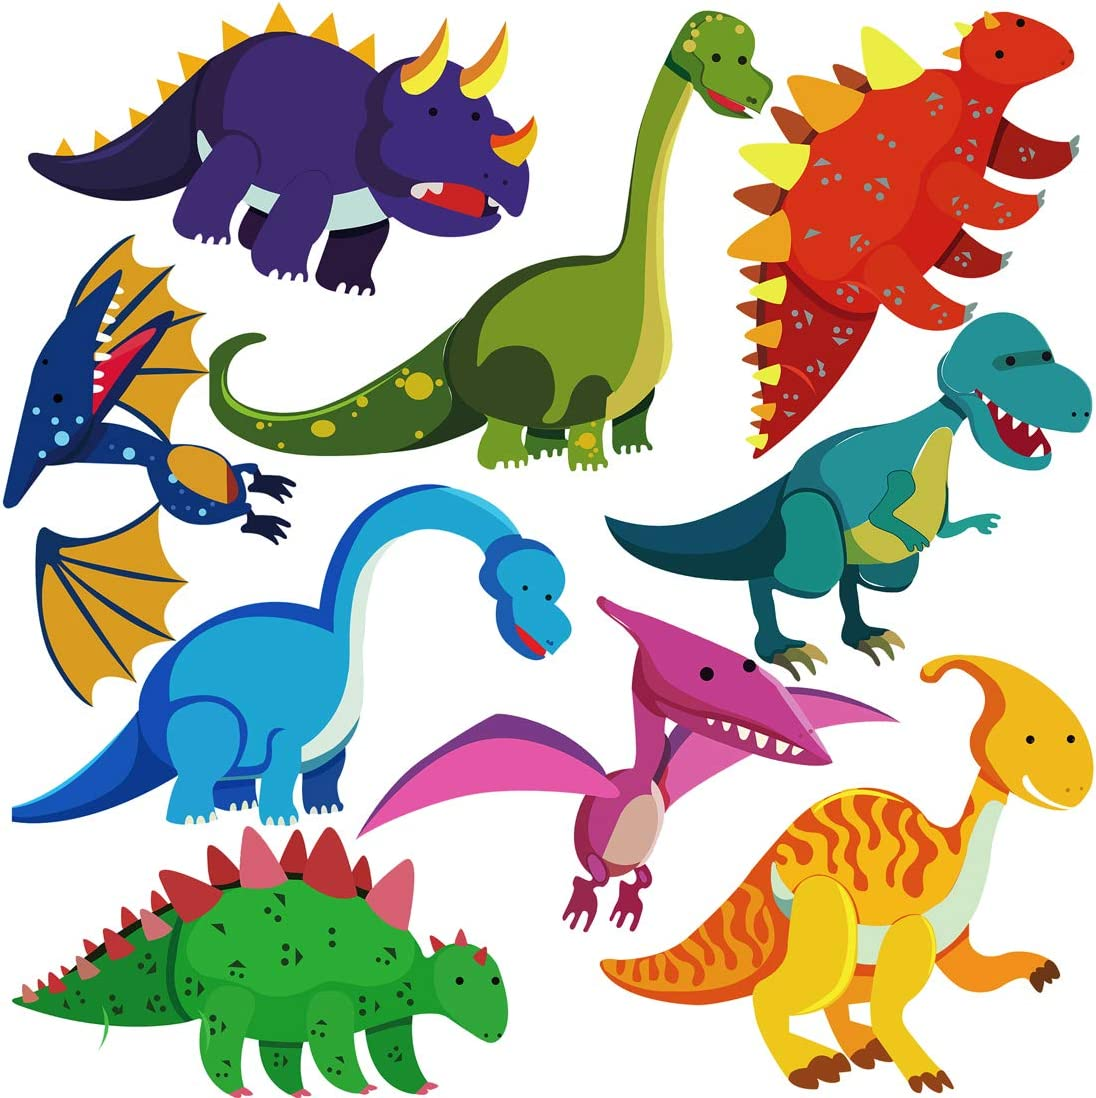 DEKOSH Dinosaur Wall Decals for Nursery Decor | Jurassic World T-rex Colorful Peel & Stick Prehistoric Kids Wall Stickers for Baby Bedroom, Playroom Murals